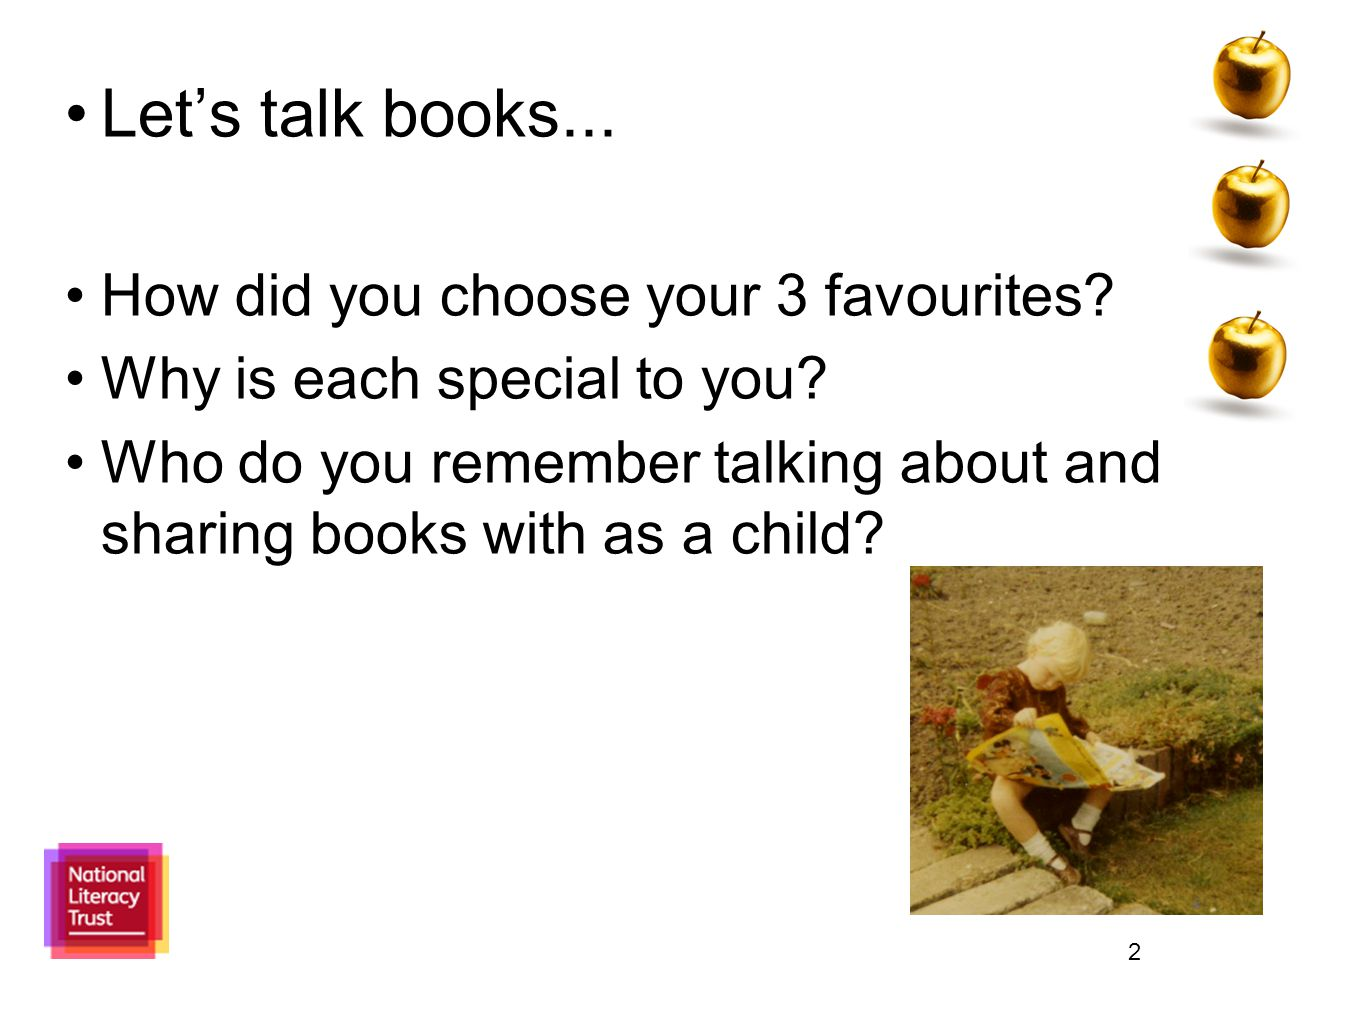 2 Let's talk books... How did you choose your 3 favourites? Why is each special to you? Who do you remember talking about and sharing books with as a